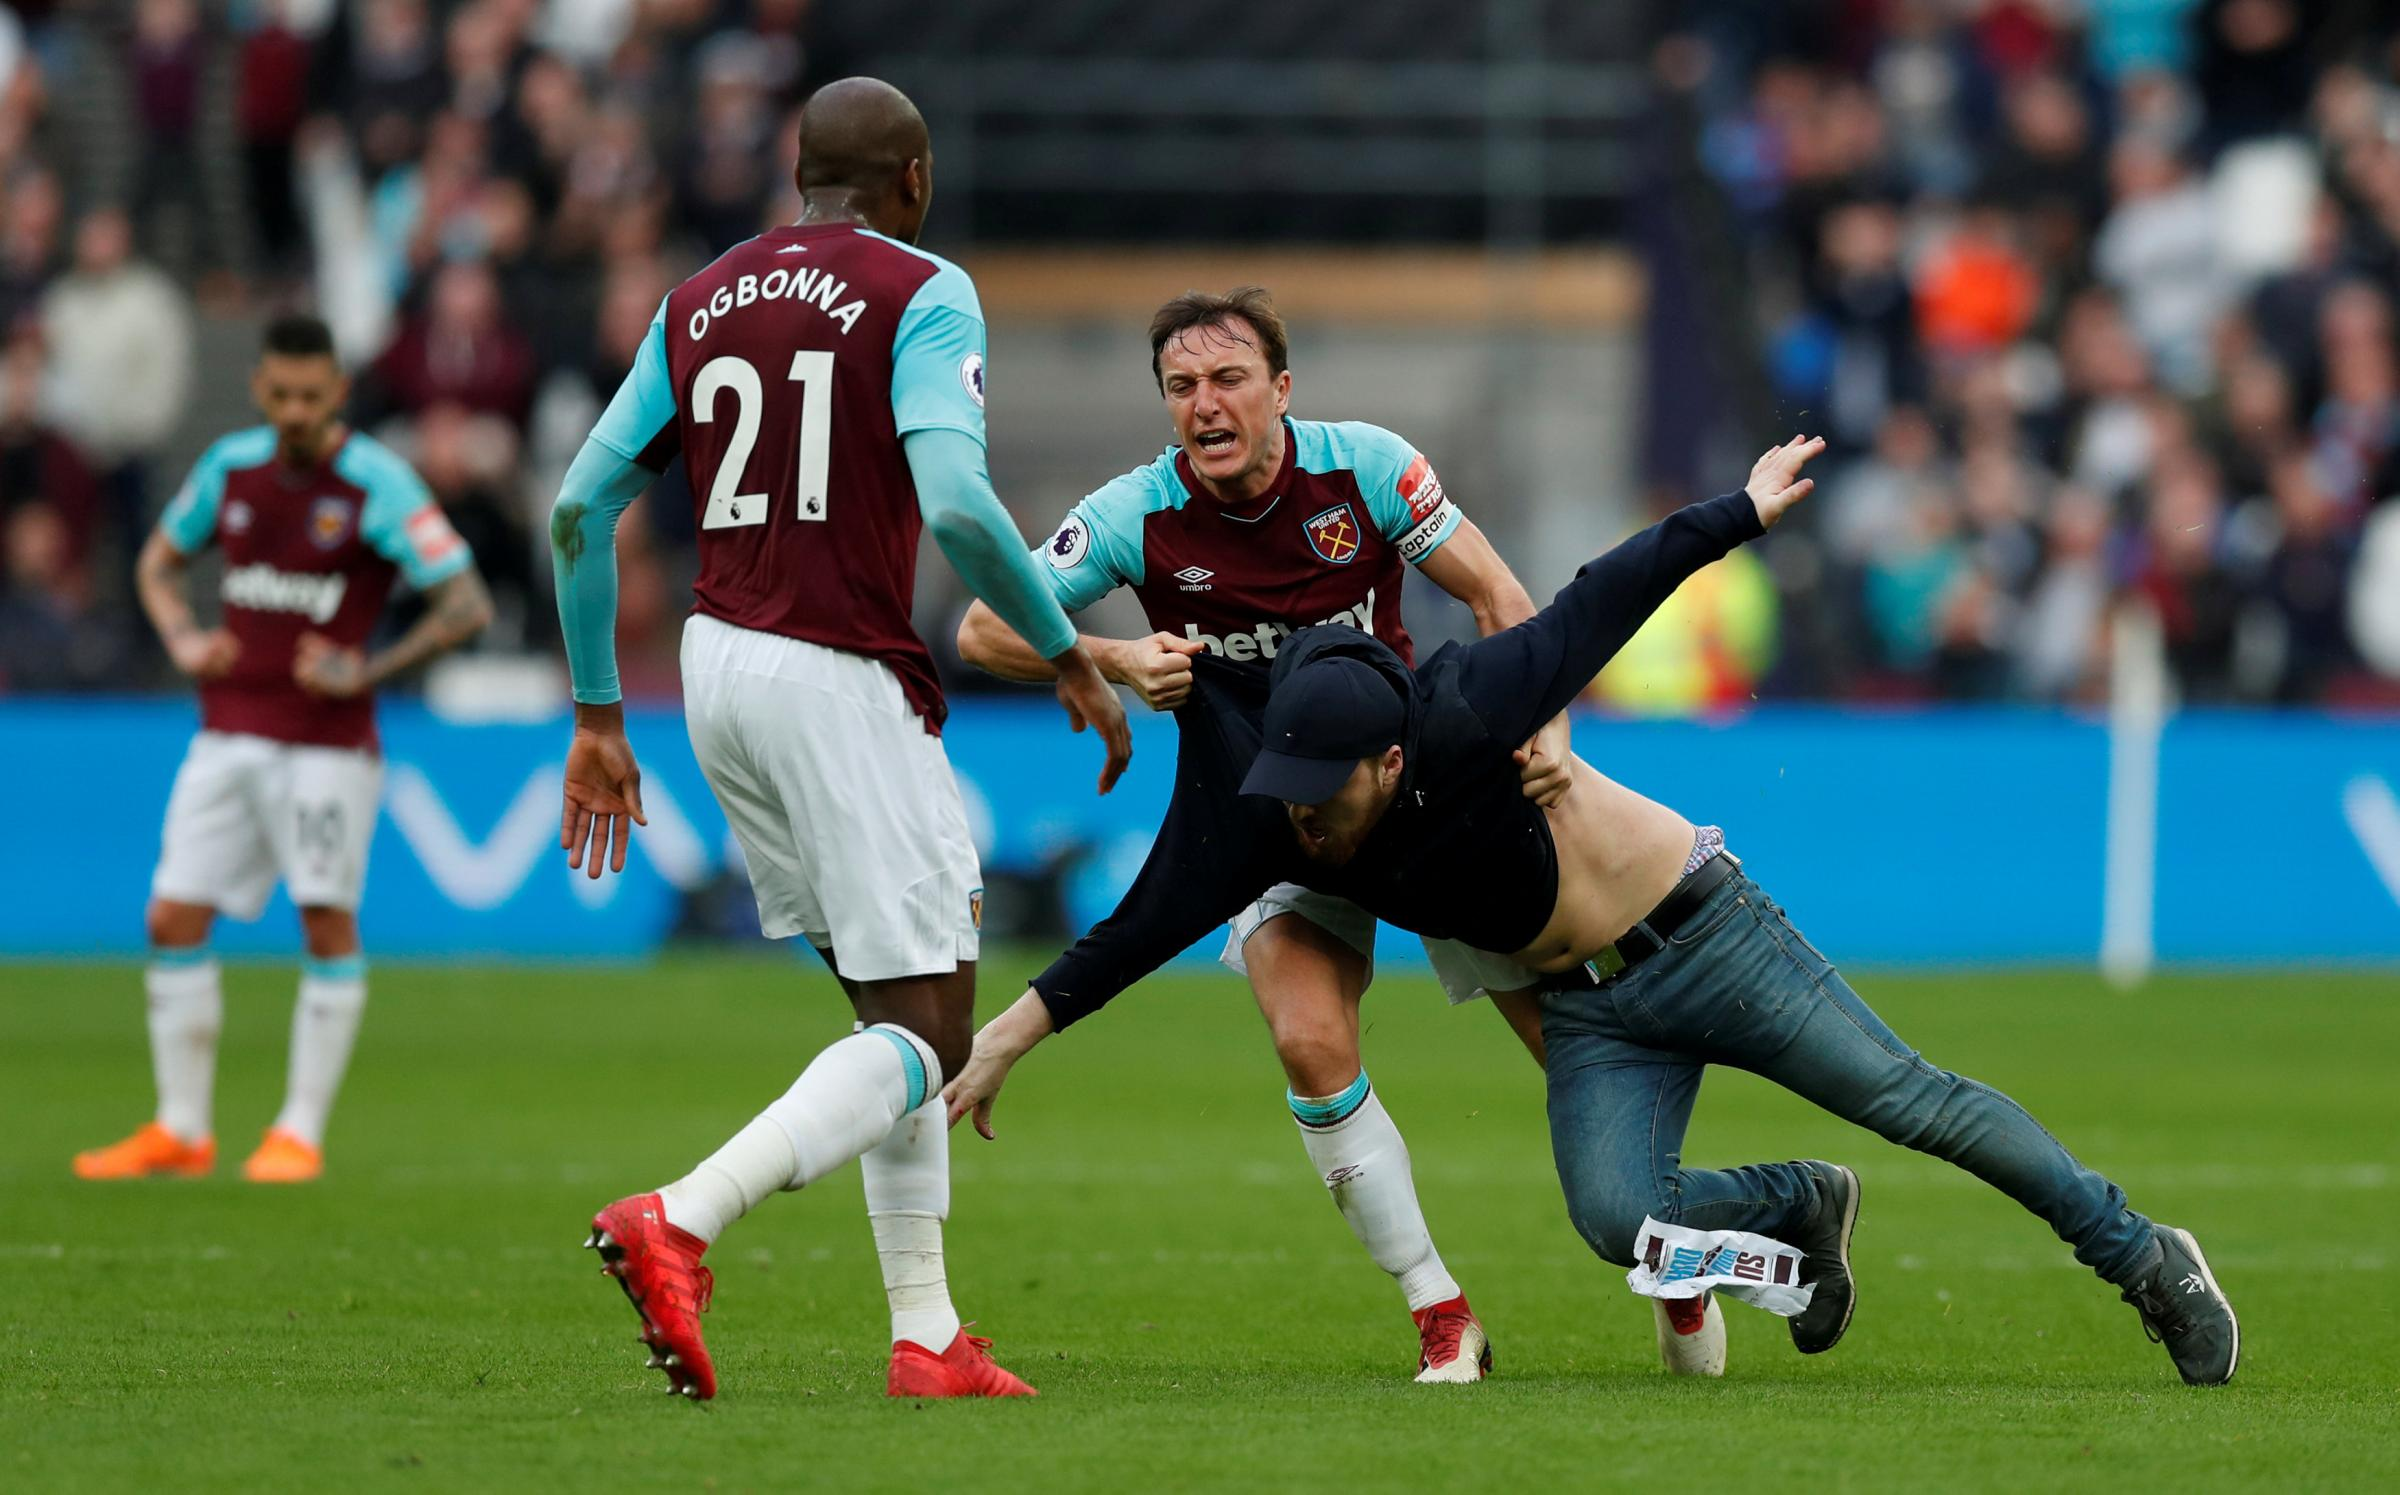 Mark Noble wrestles the first pitch invader to the ground. Picture: Action Images